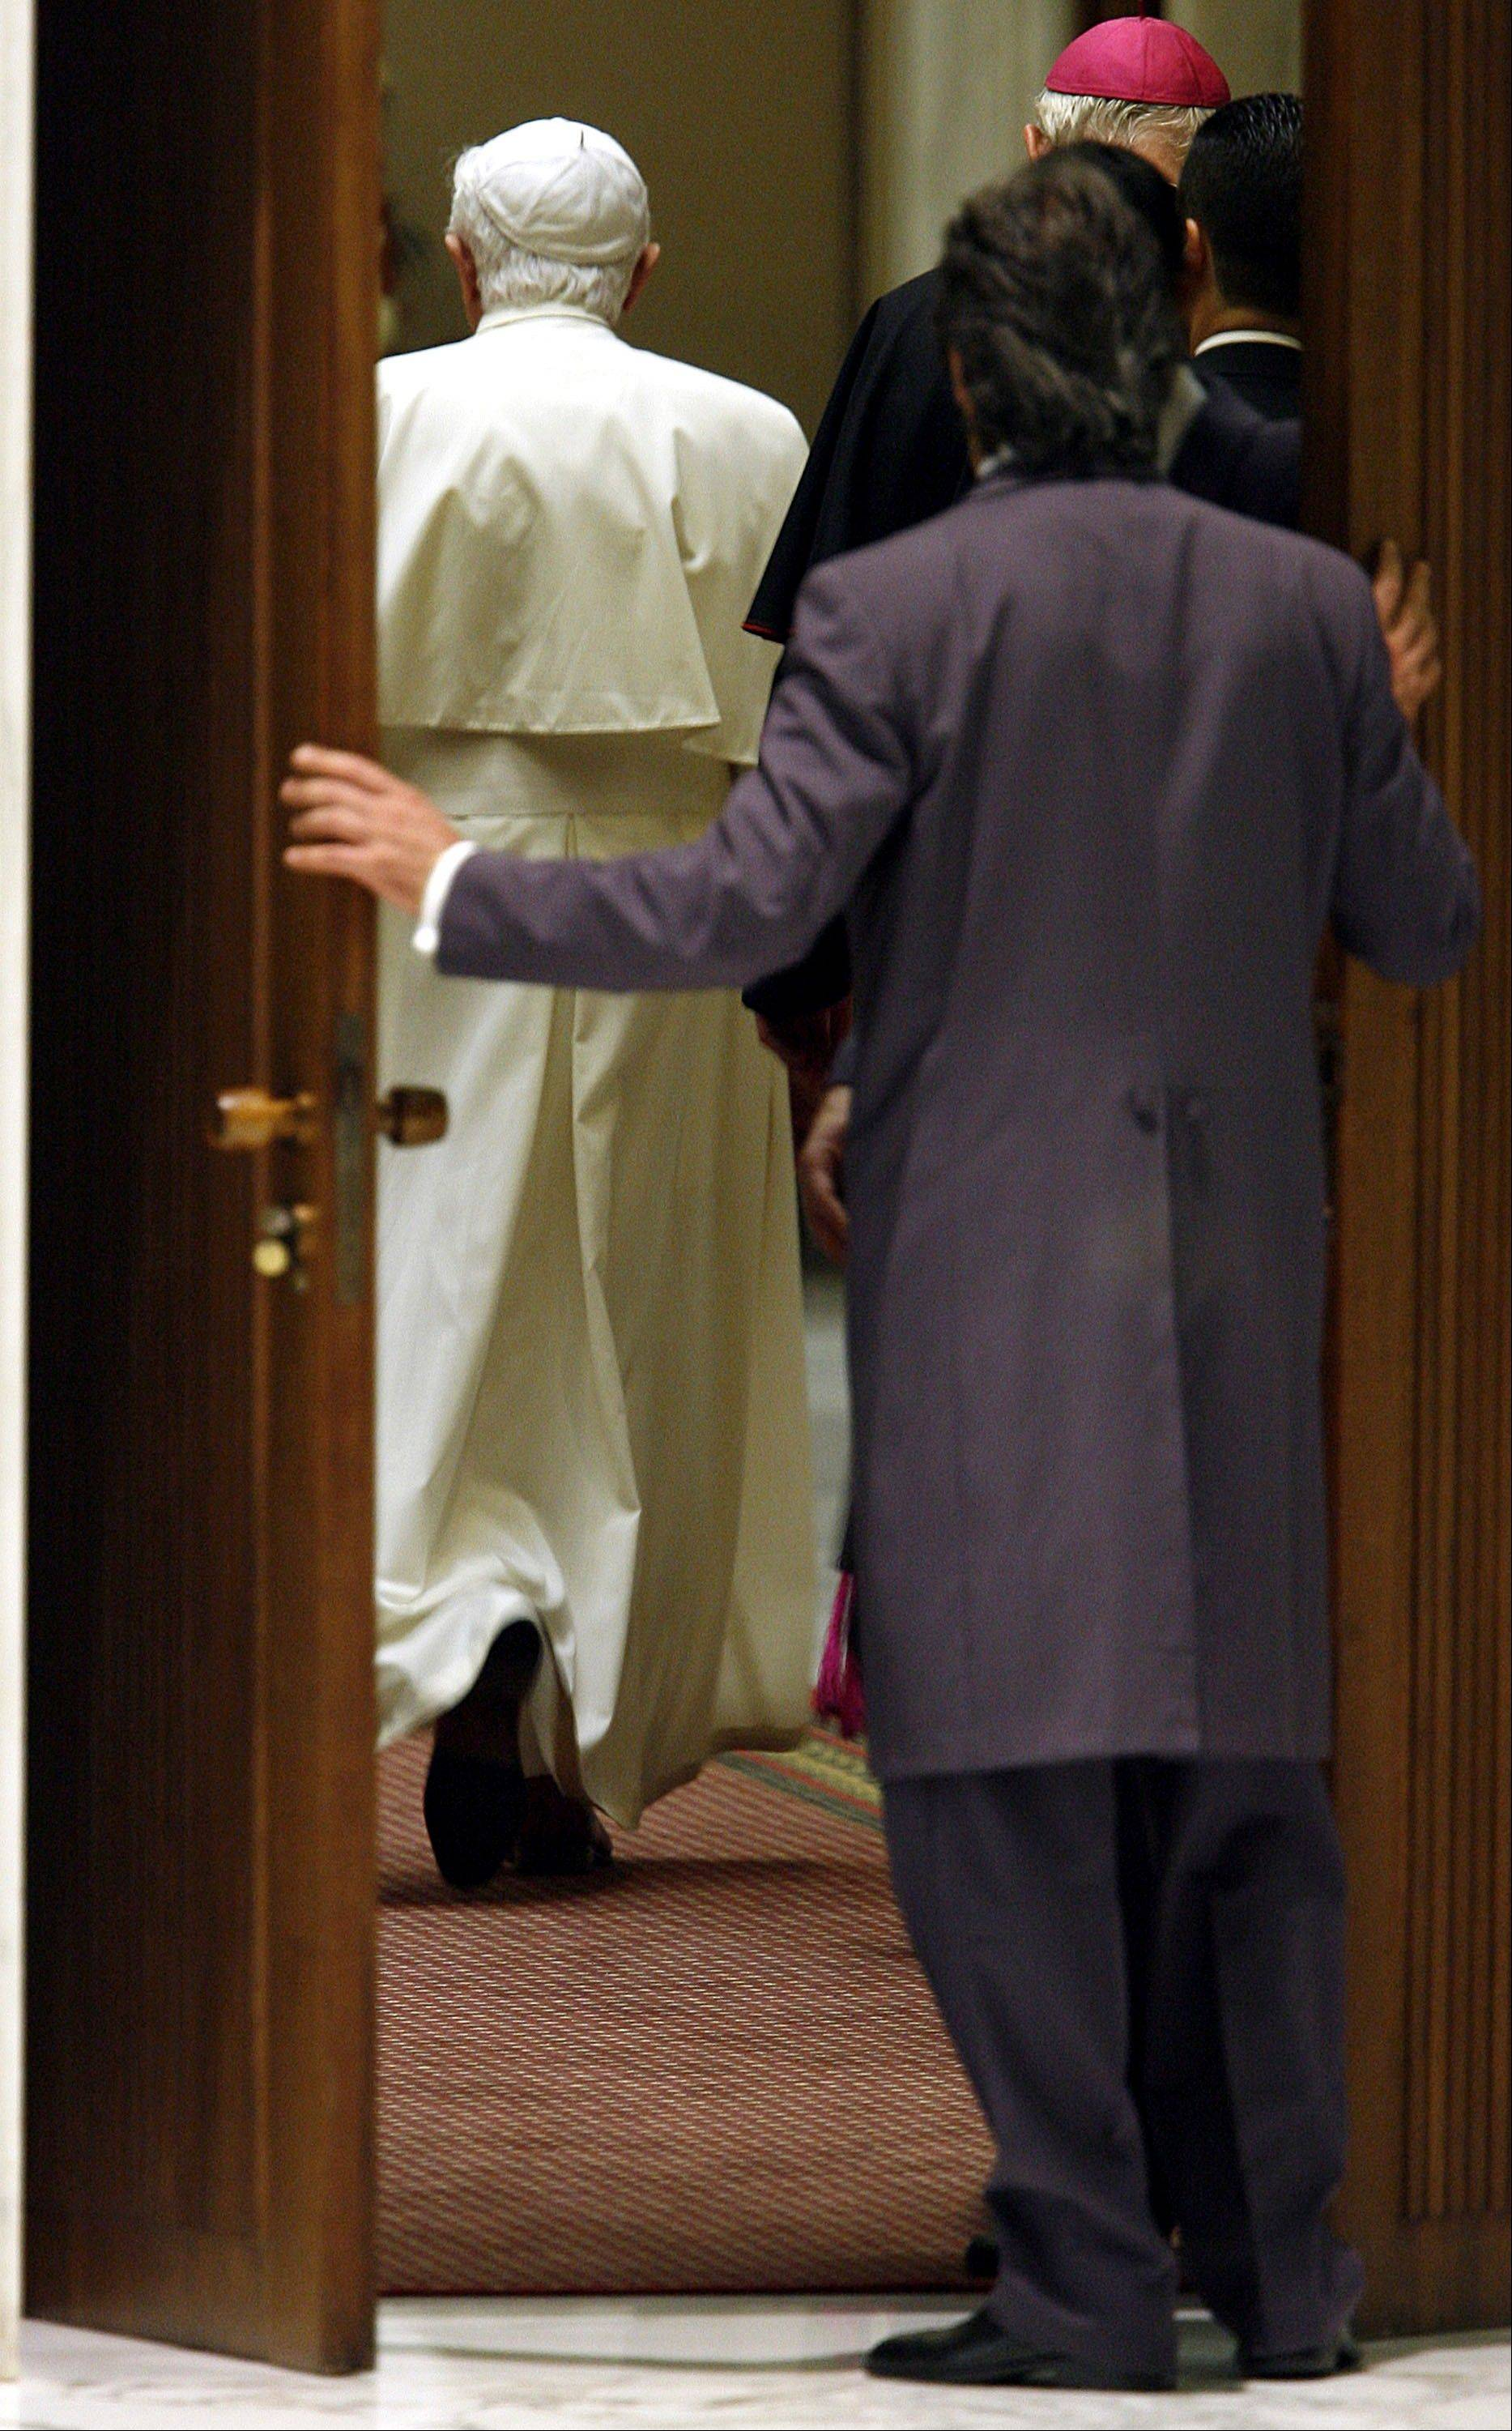 A Vatican usher, foreground, closes a door as Pope Benedict XVI leaves after an audience in Pope Paul VI hall at the Vatican.